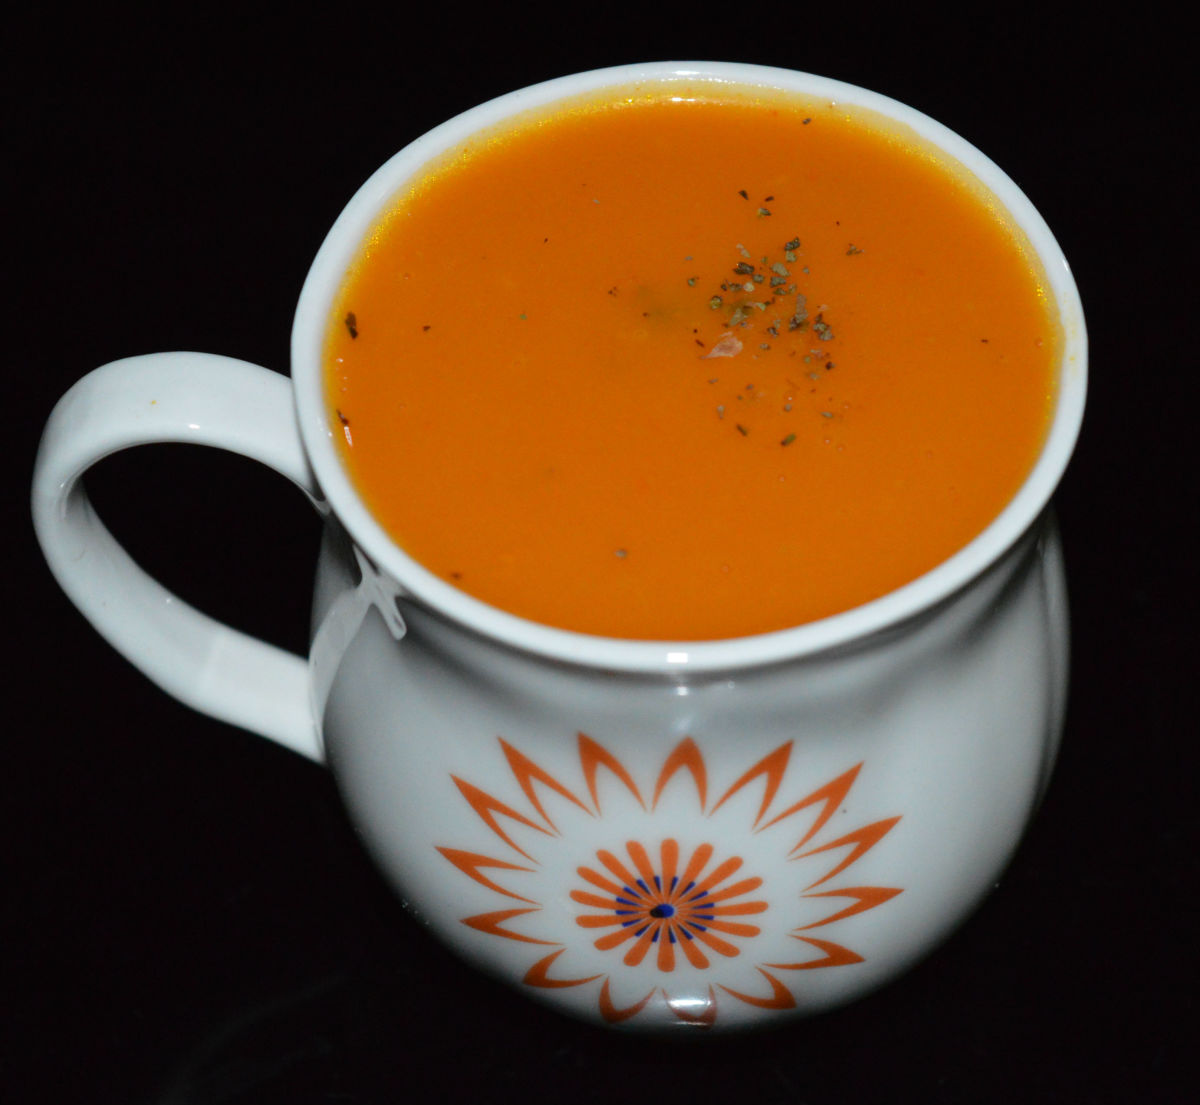 Carrot onion soup